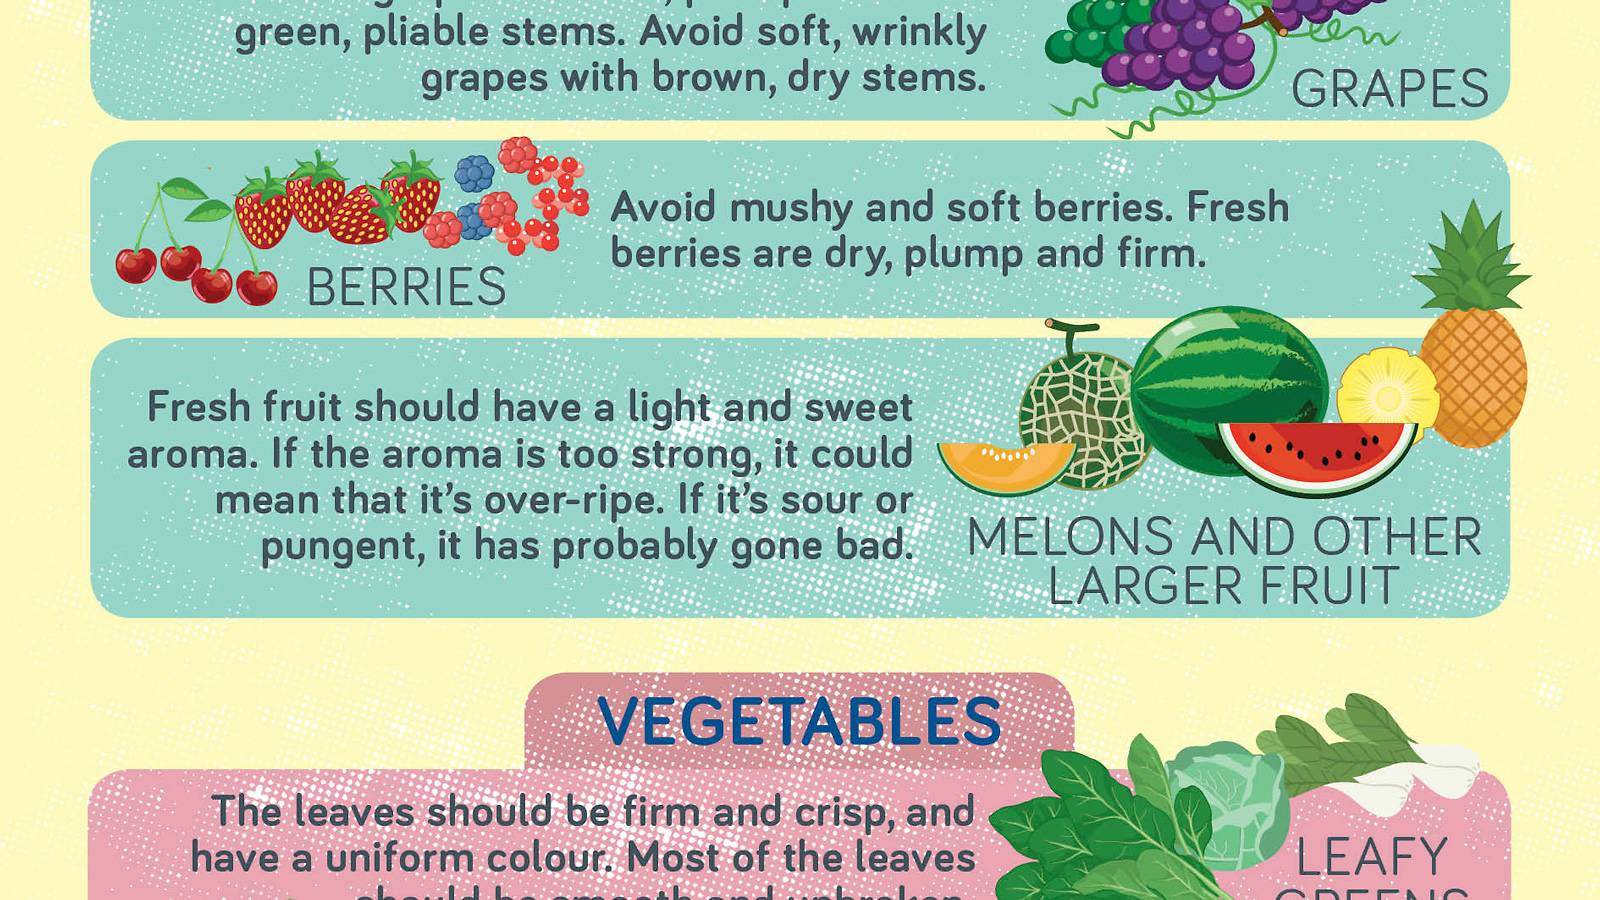 Parents-How-to-select-fresh-produce-[Infographic]-4